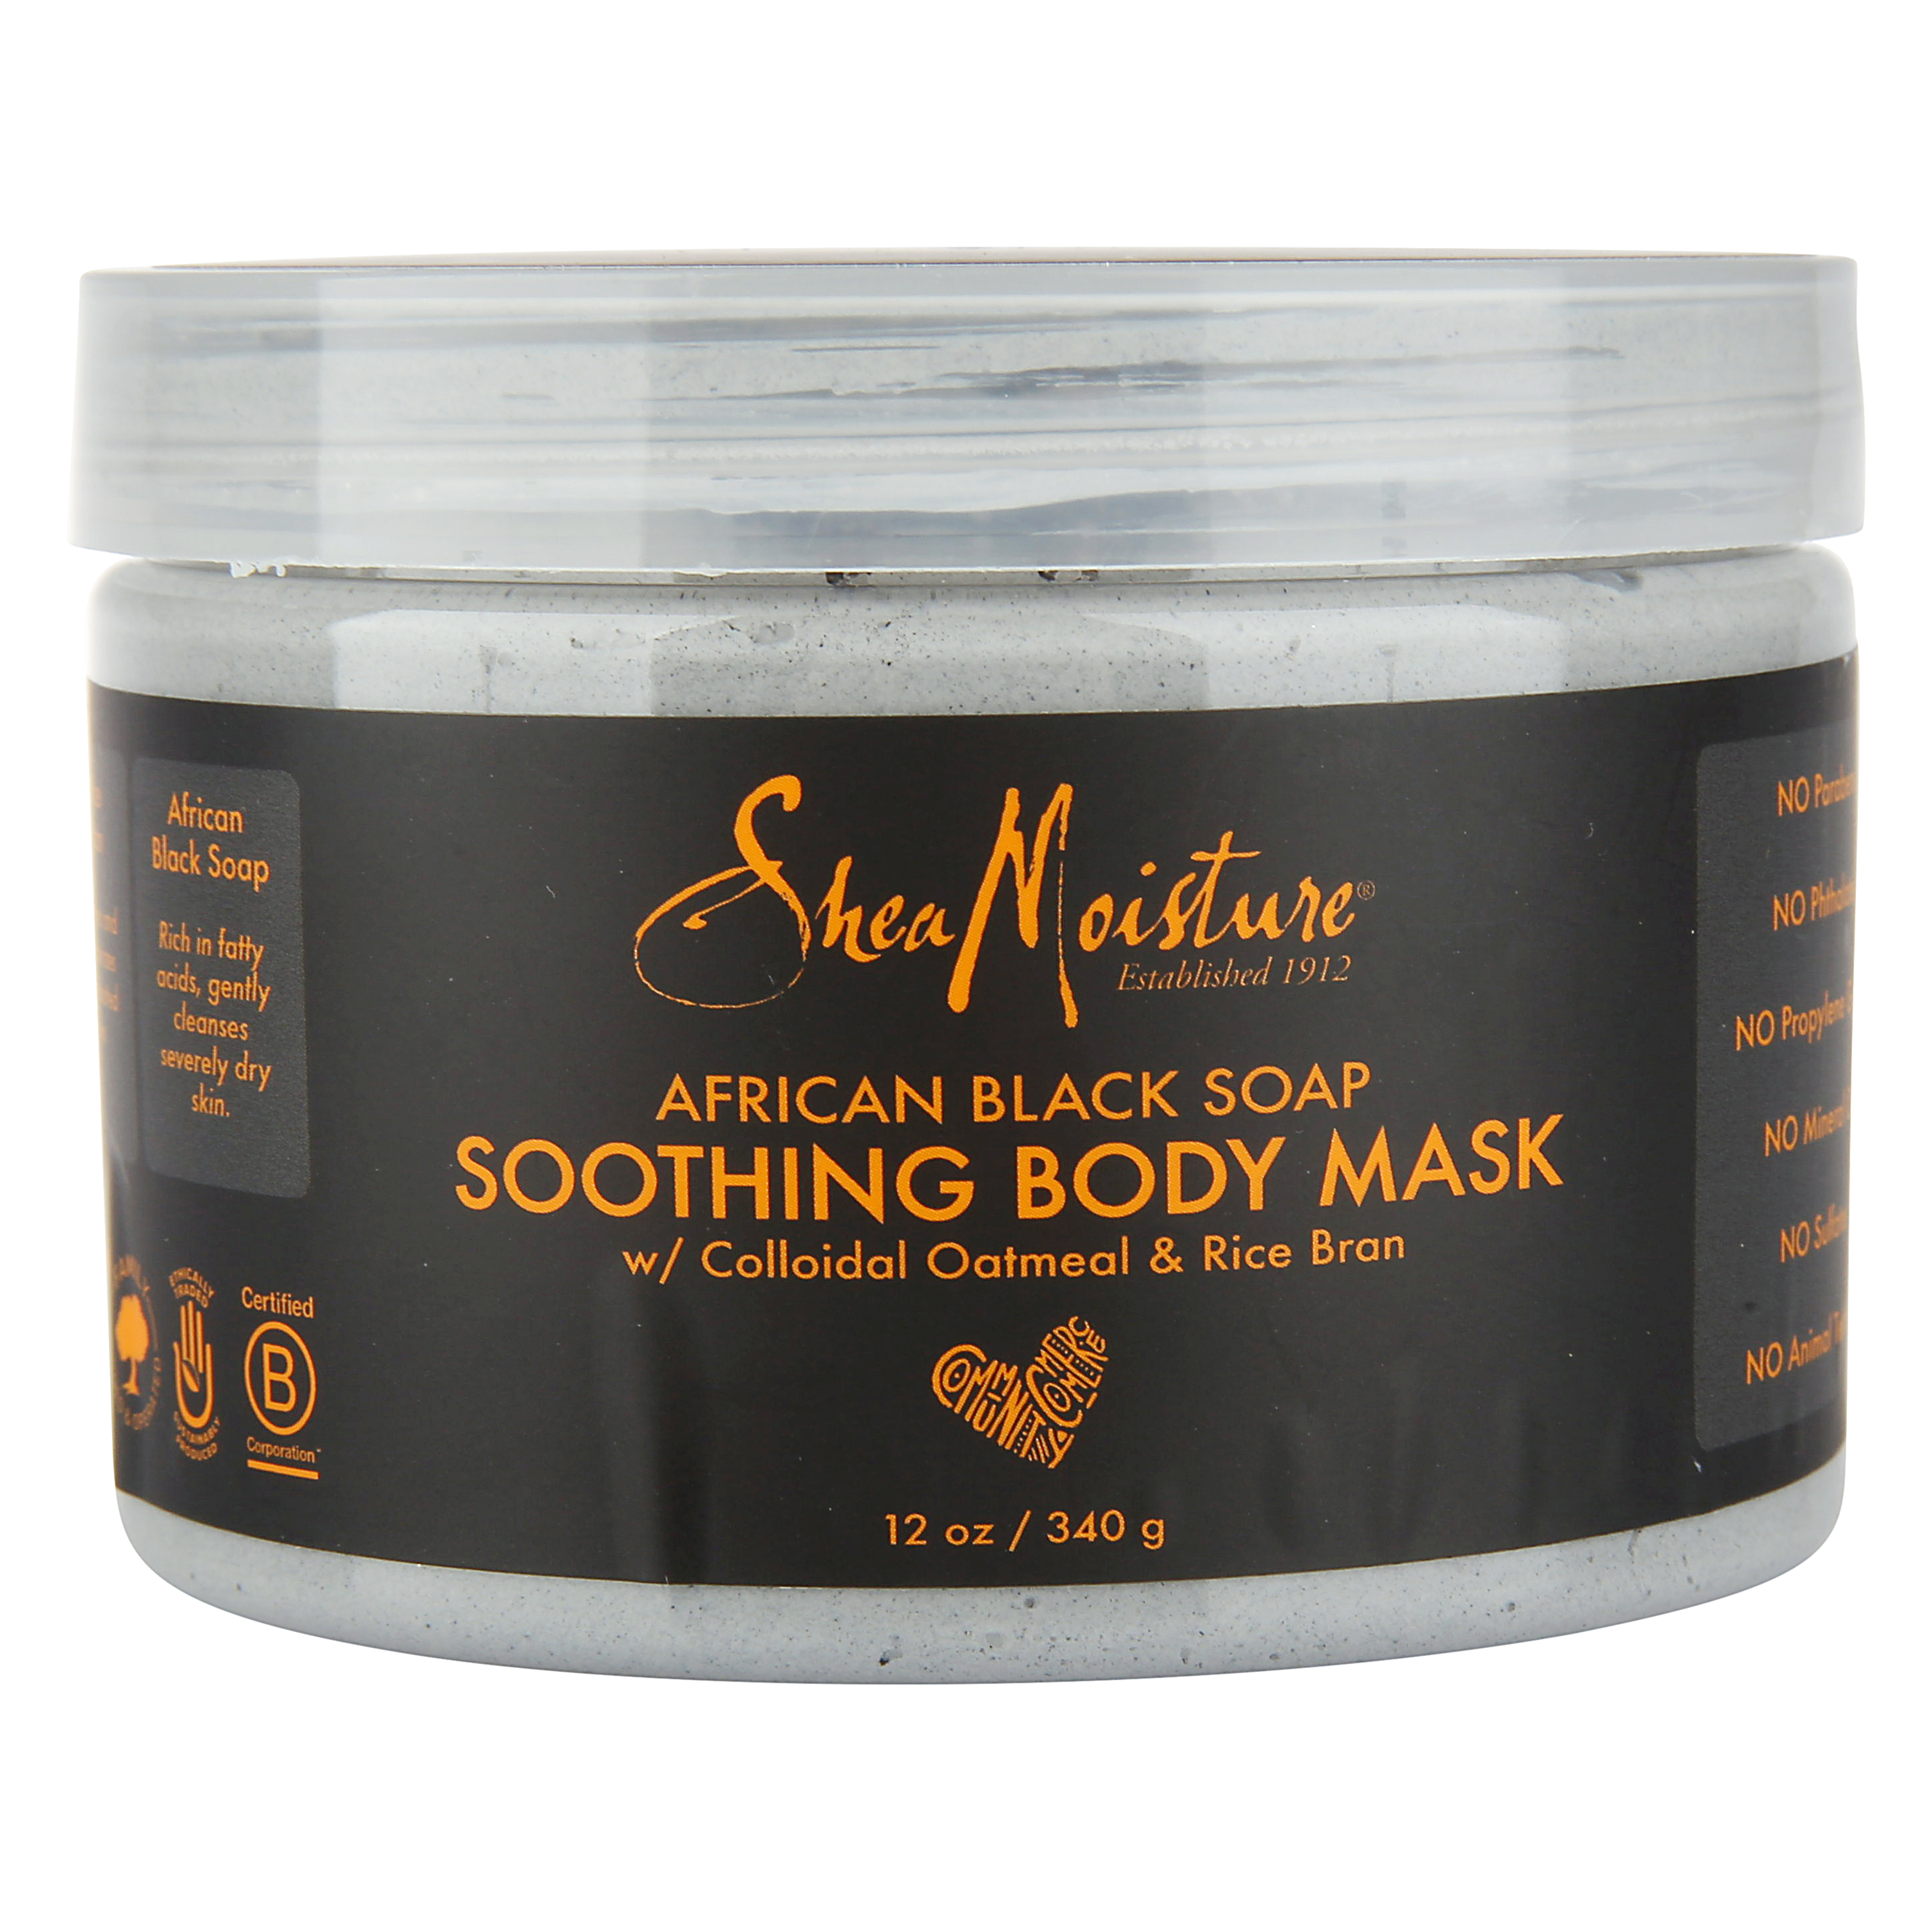 Shea Moisture African Black Soap Soothing Body Mask